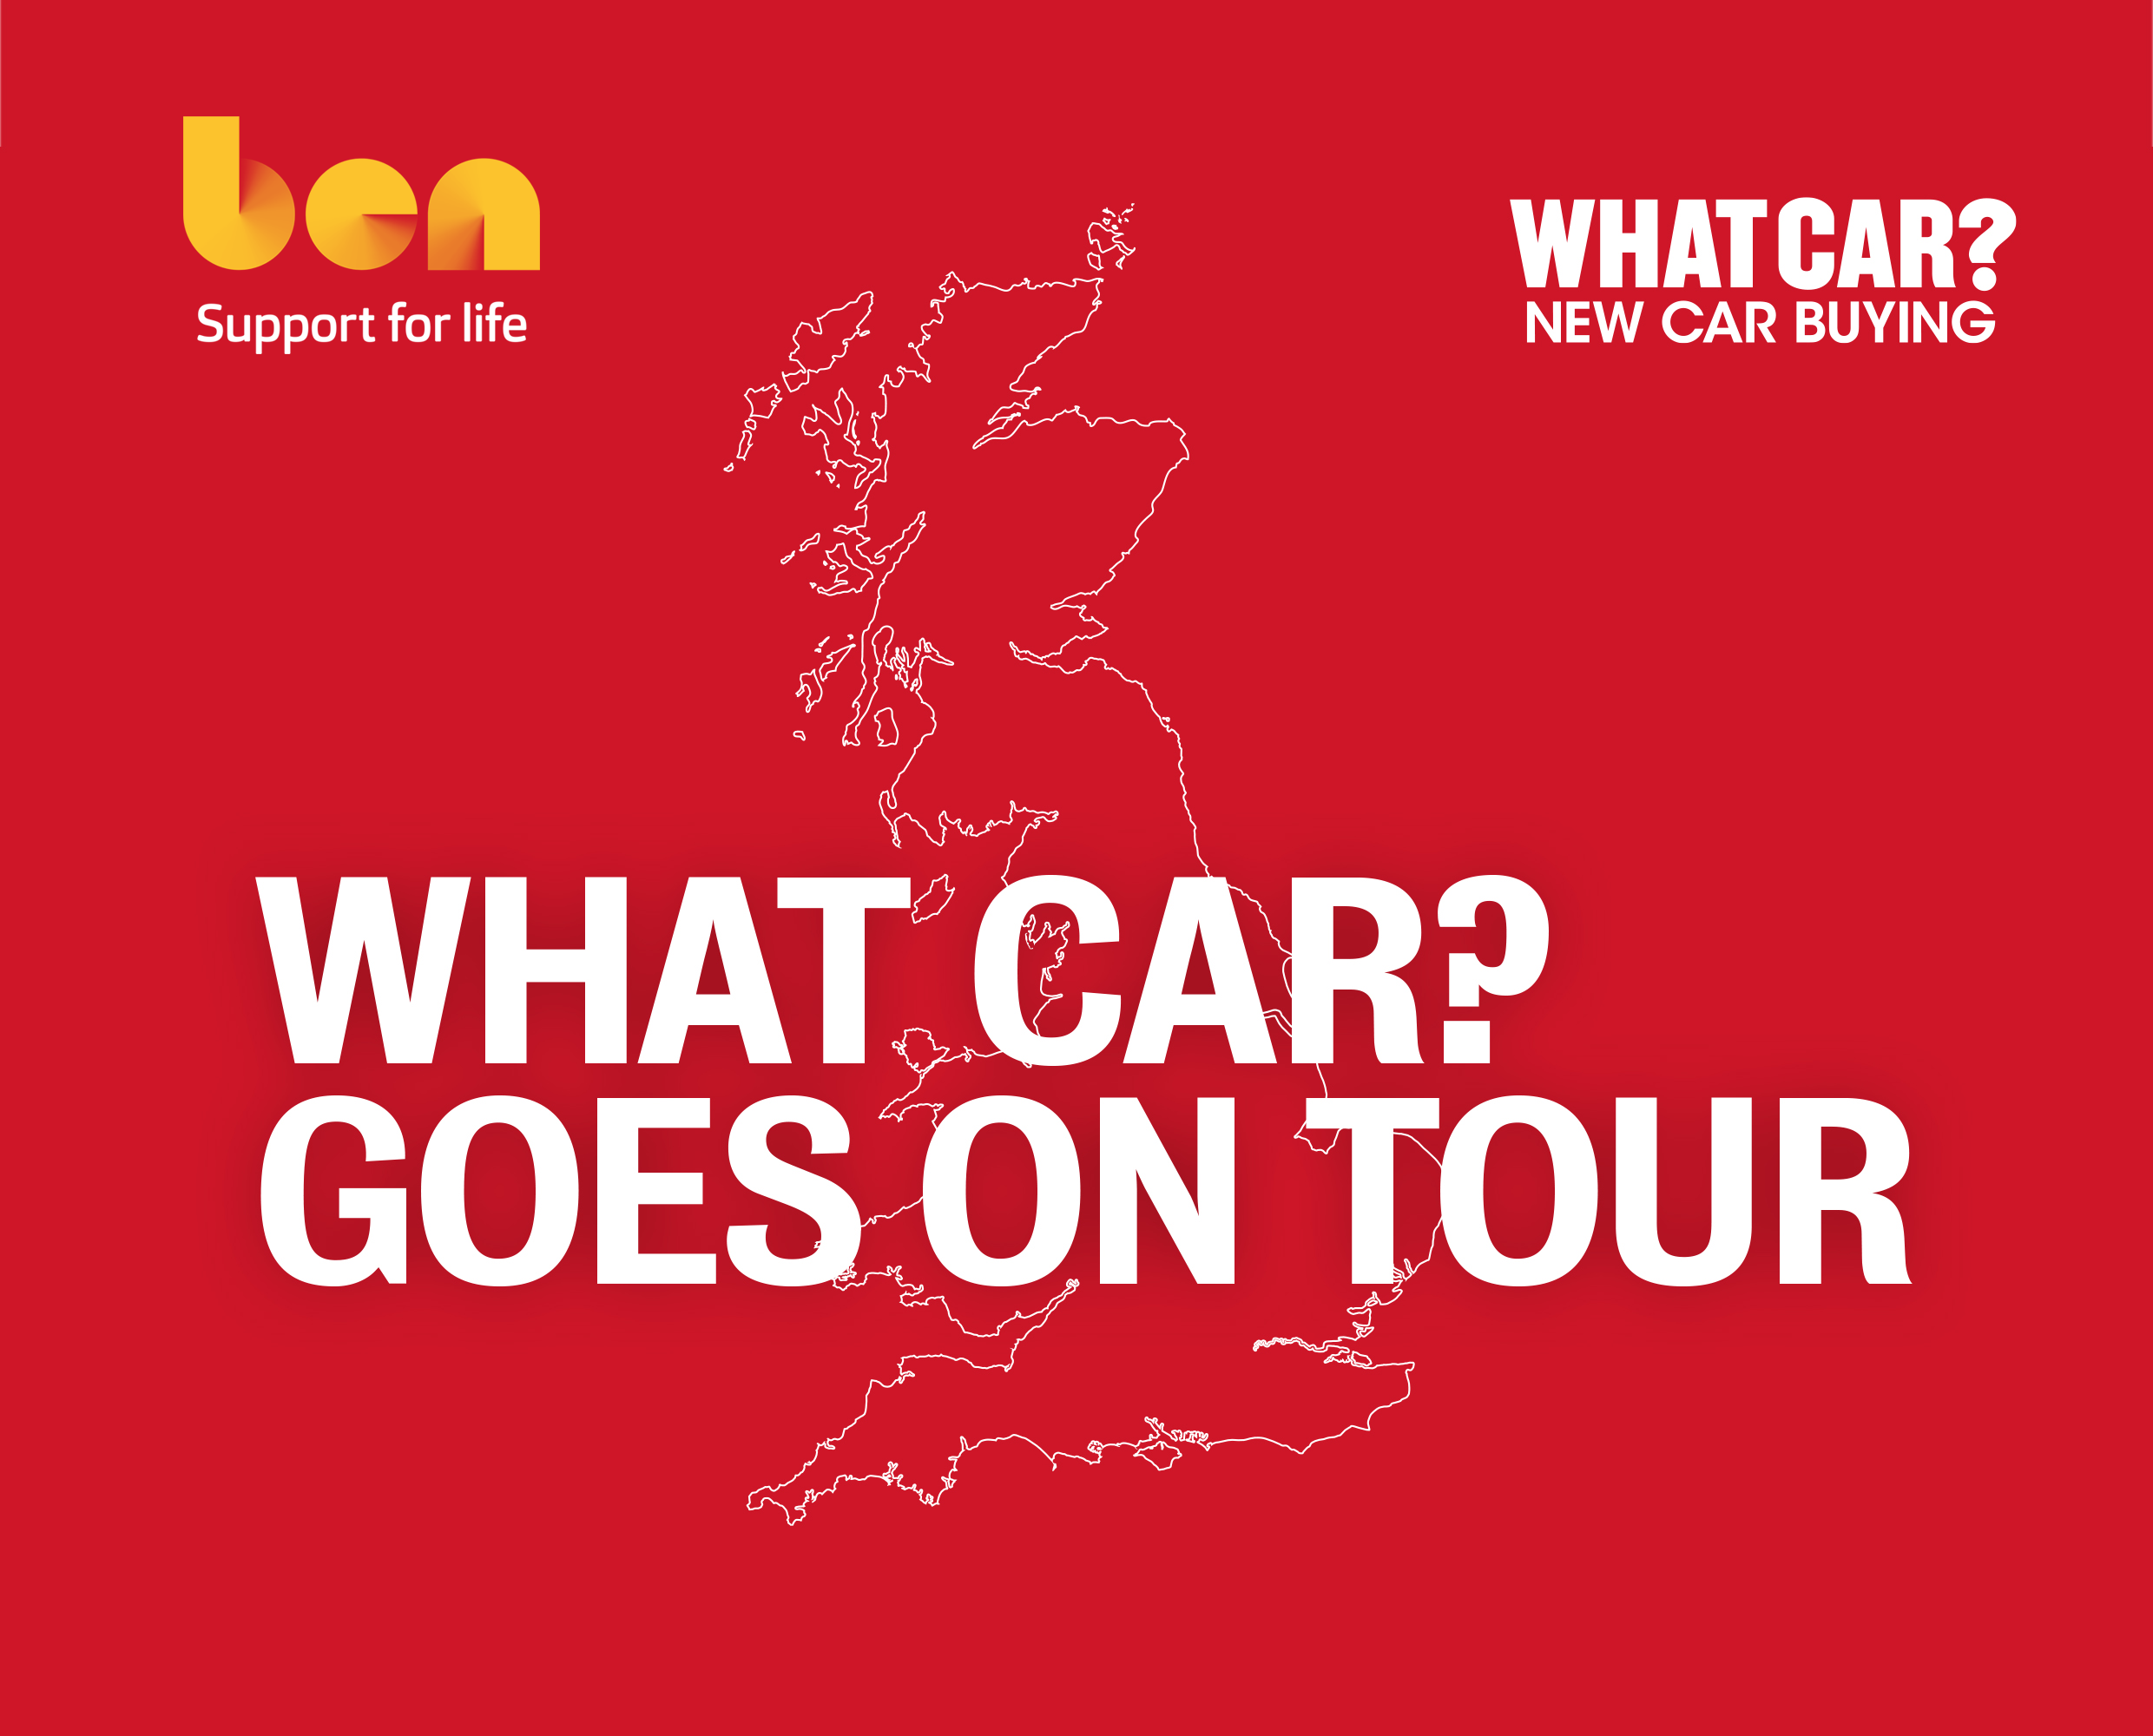 What Car? Goes On Tour